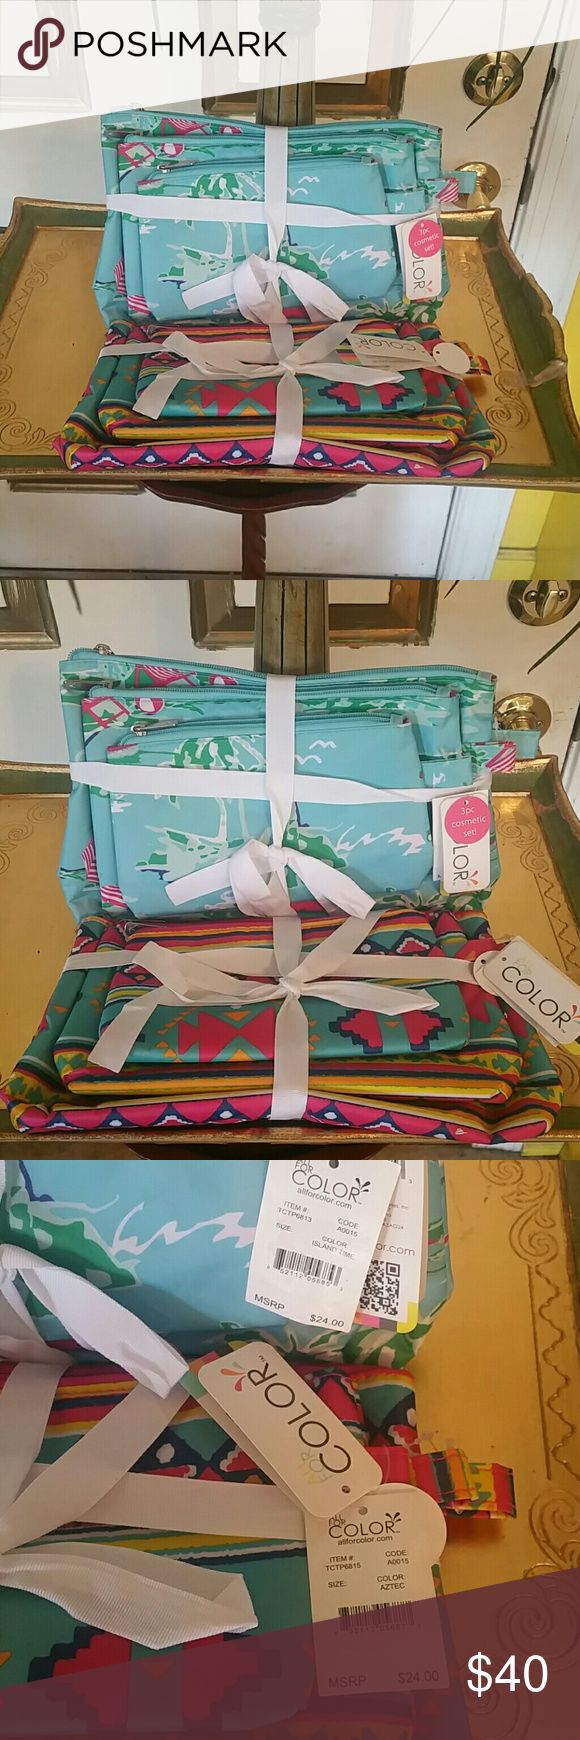 """All For Color 3 Piece Cosmetic Bag Set Bundle Look no further for the ultimate cosmetic bag set. Get this not 1, not 2, but 3 yes 3 cases! Small 7.75"""" x.4.5, Med 9"""" x 6"""" and LG 11.25"""" x 7"""". These are new with tags and they would make great Christmas gifts. See pic 4 for a small spot at the top of the blue set. Nothing that will mess it up. They are made of 100% polyester.  They sell for 24.00 per set. See bundle price below. Price is firm. All For Color Bags Cosmetic Bags & Cases"""